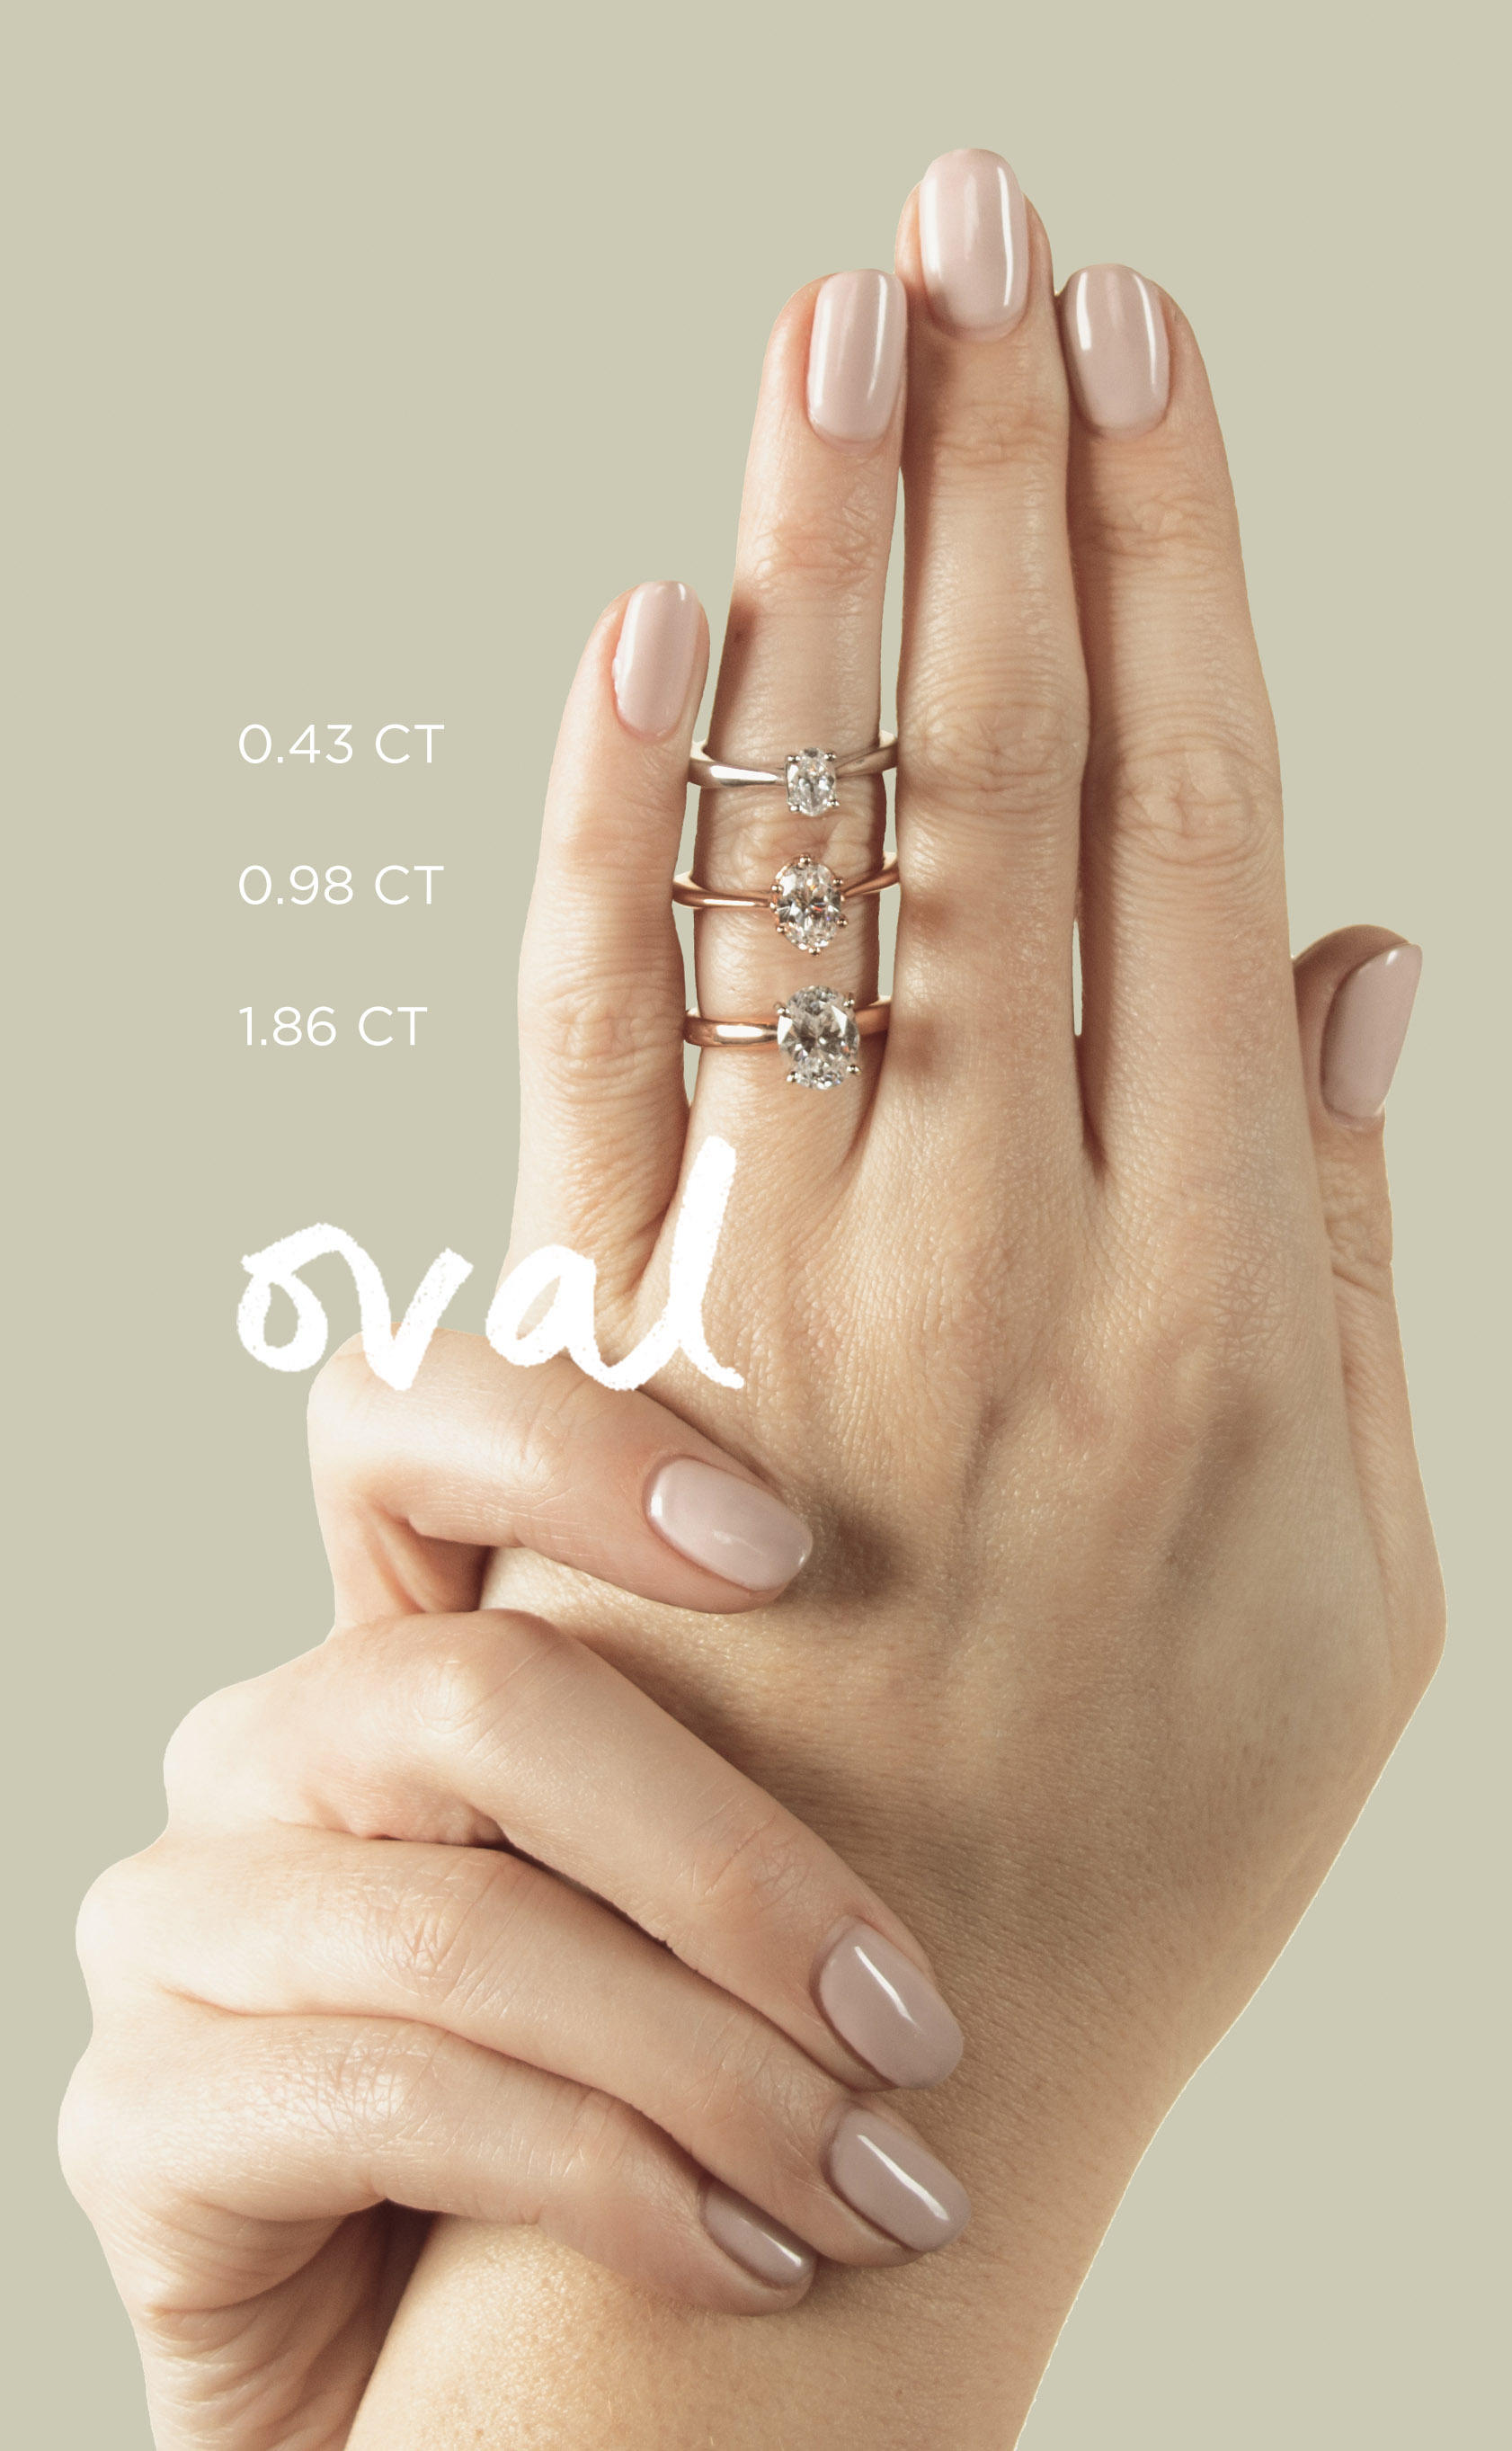 How To Choose The Perfect Carat Weight